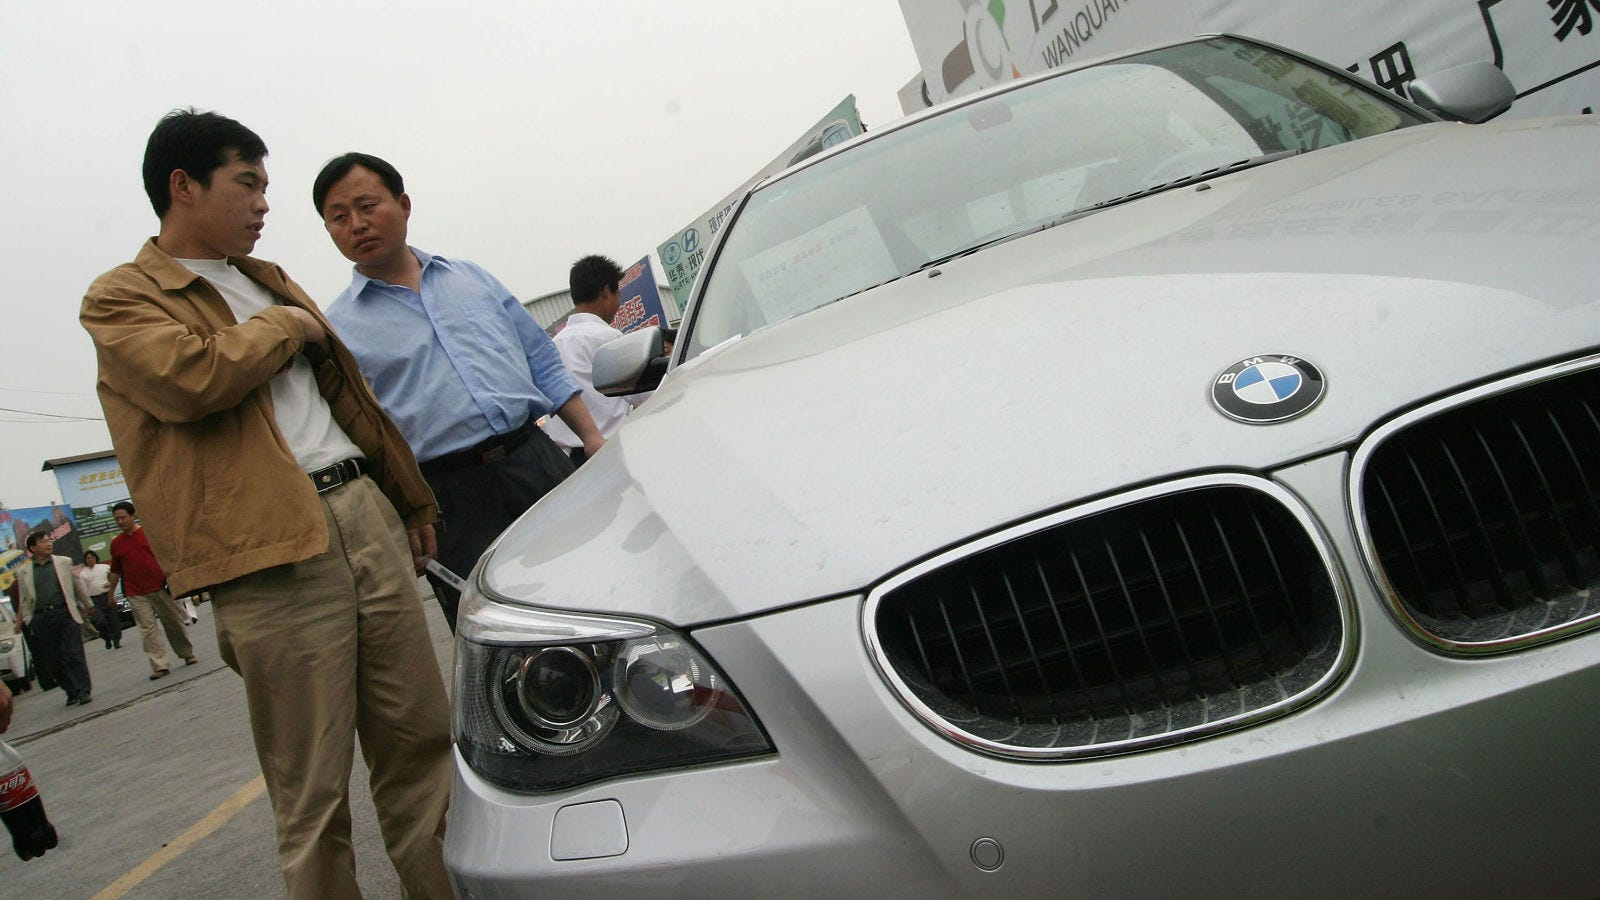 Car Salesman Salary: BMW Will Pay $820 Million To Bailout Chinese Car Dealers